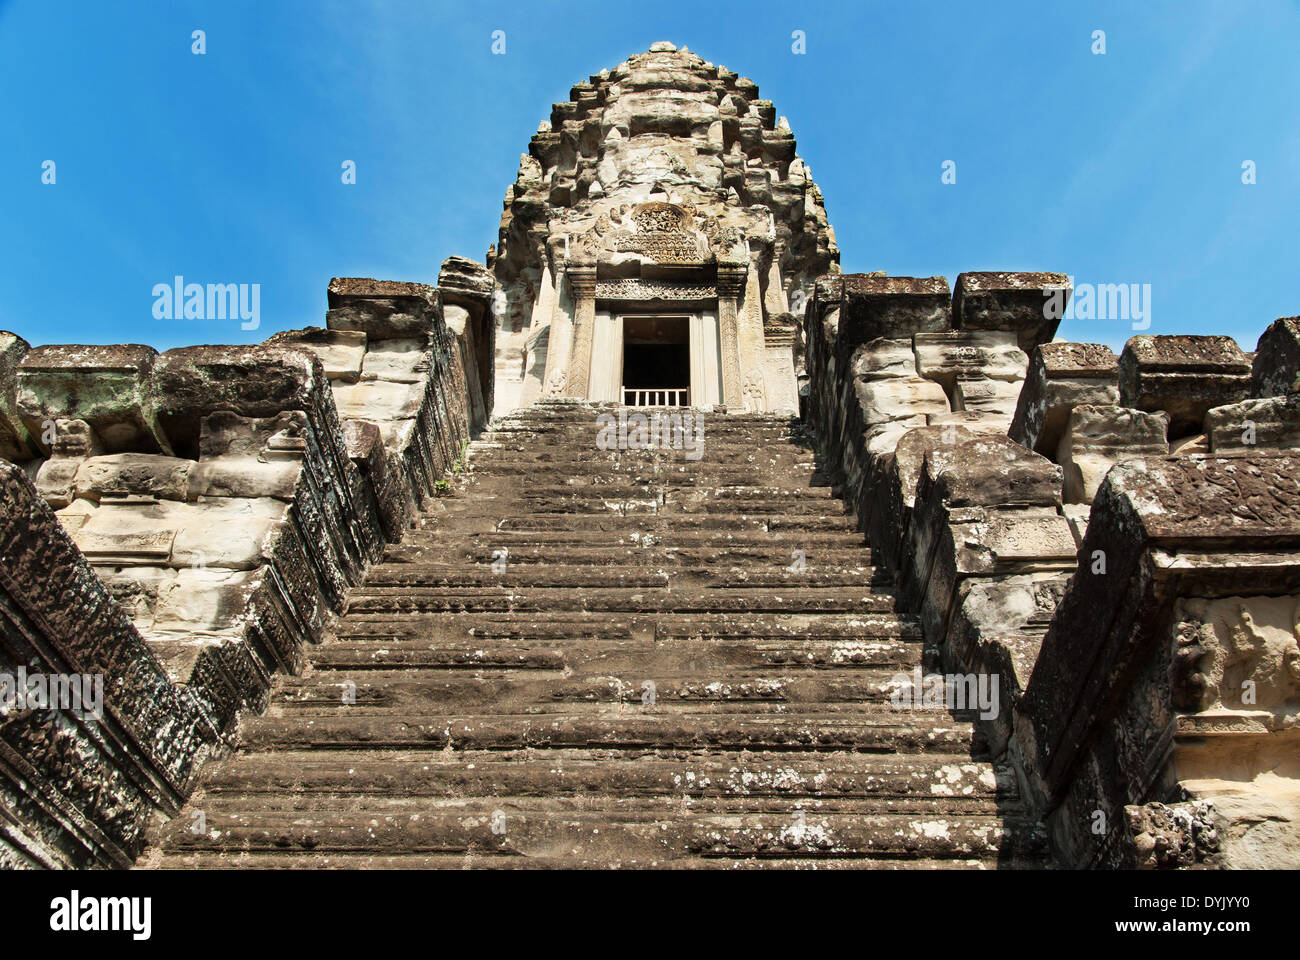 Stone steps leading to Angkor Wat stone tower, Cambodia, Asia - Stock Image